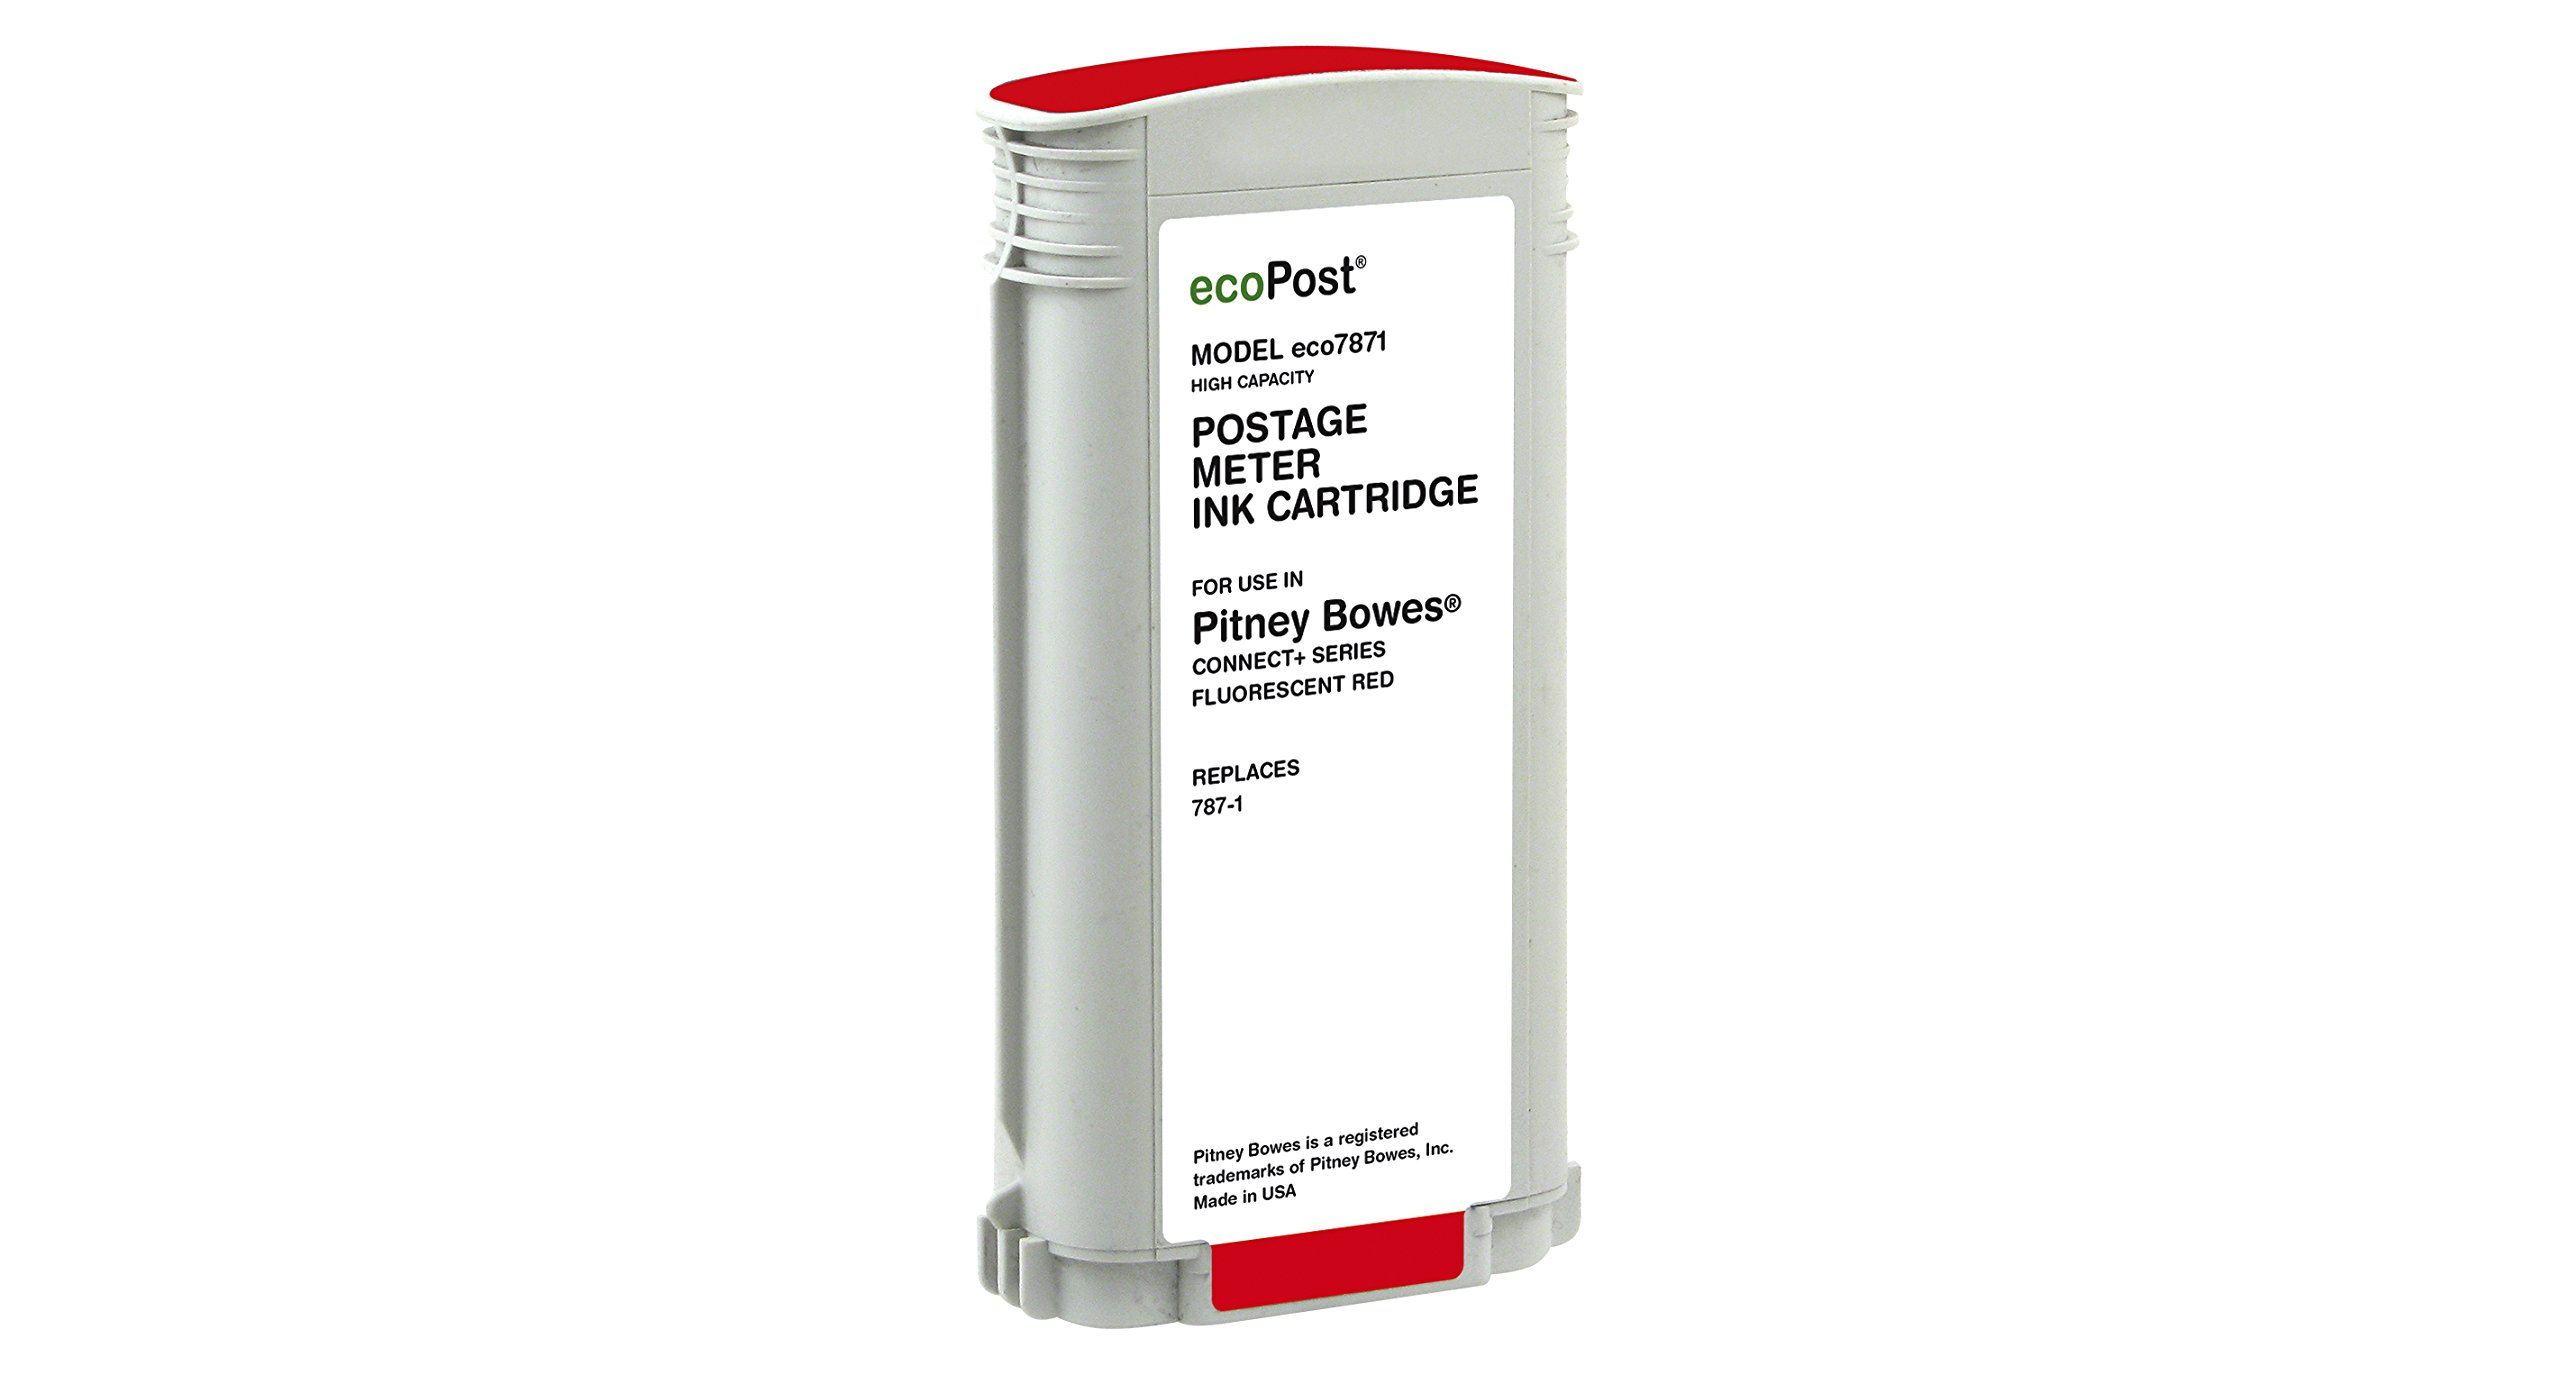 ecoPost ECO7871 High Yield Postage Ink Cartridge, Pitney Bowes Connect, Red